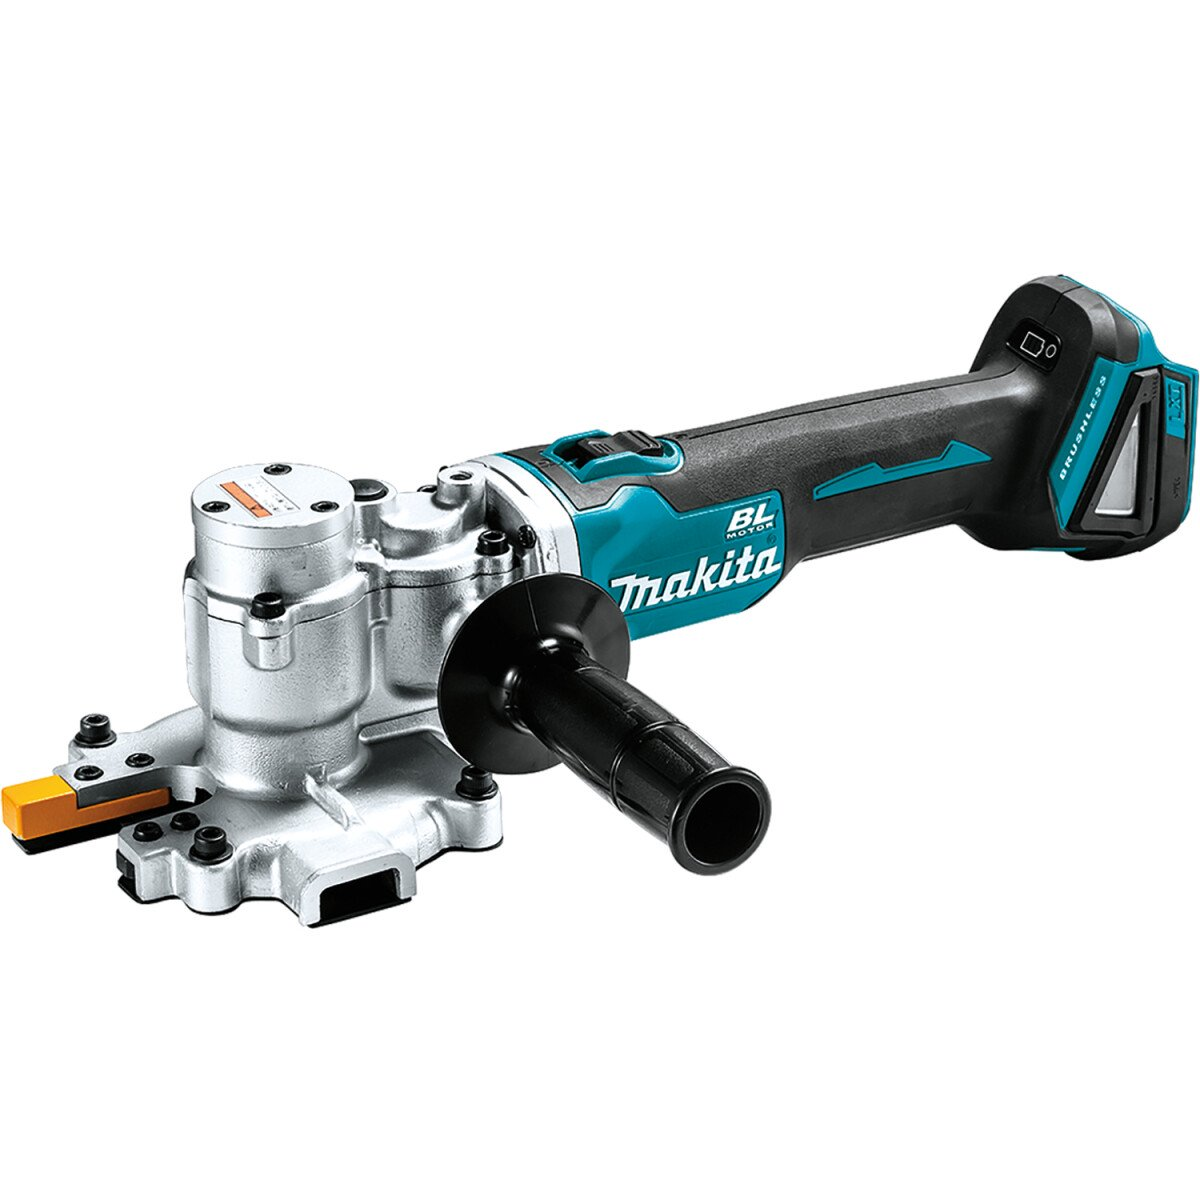 Makita DSC251ZK Body Only 18V Brushless Steel Rod Cutter LXT with Carry Case